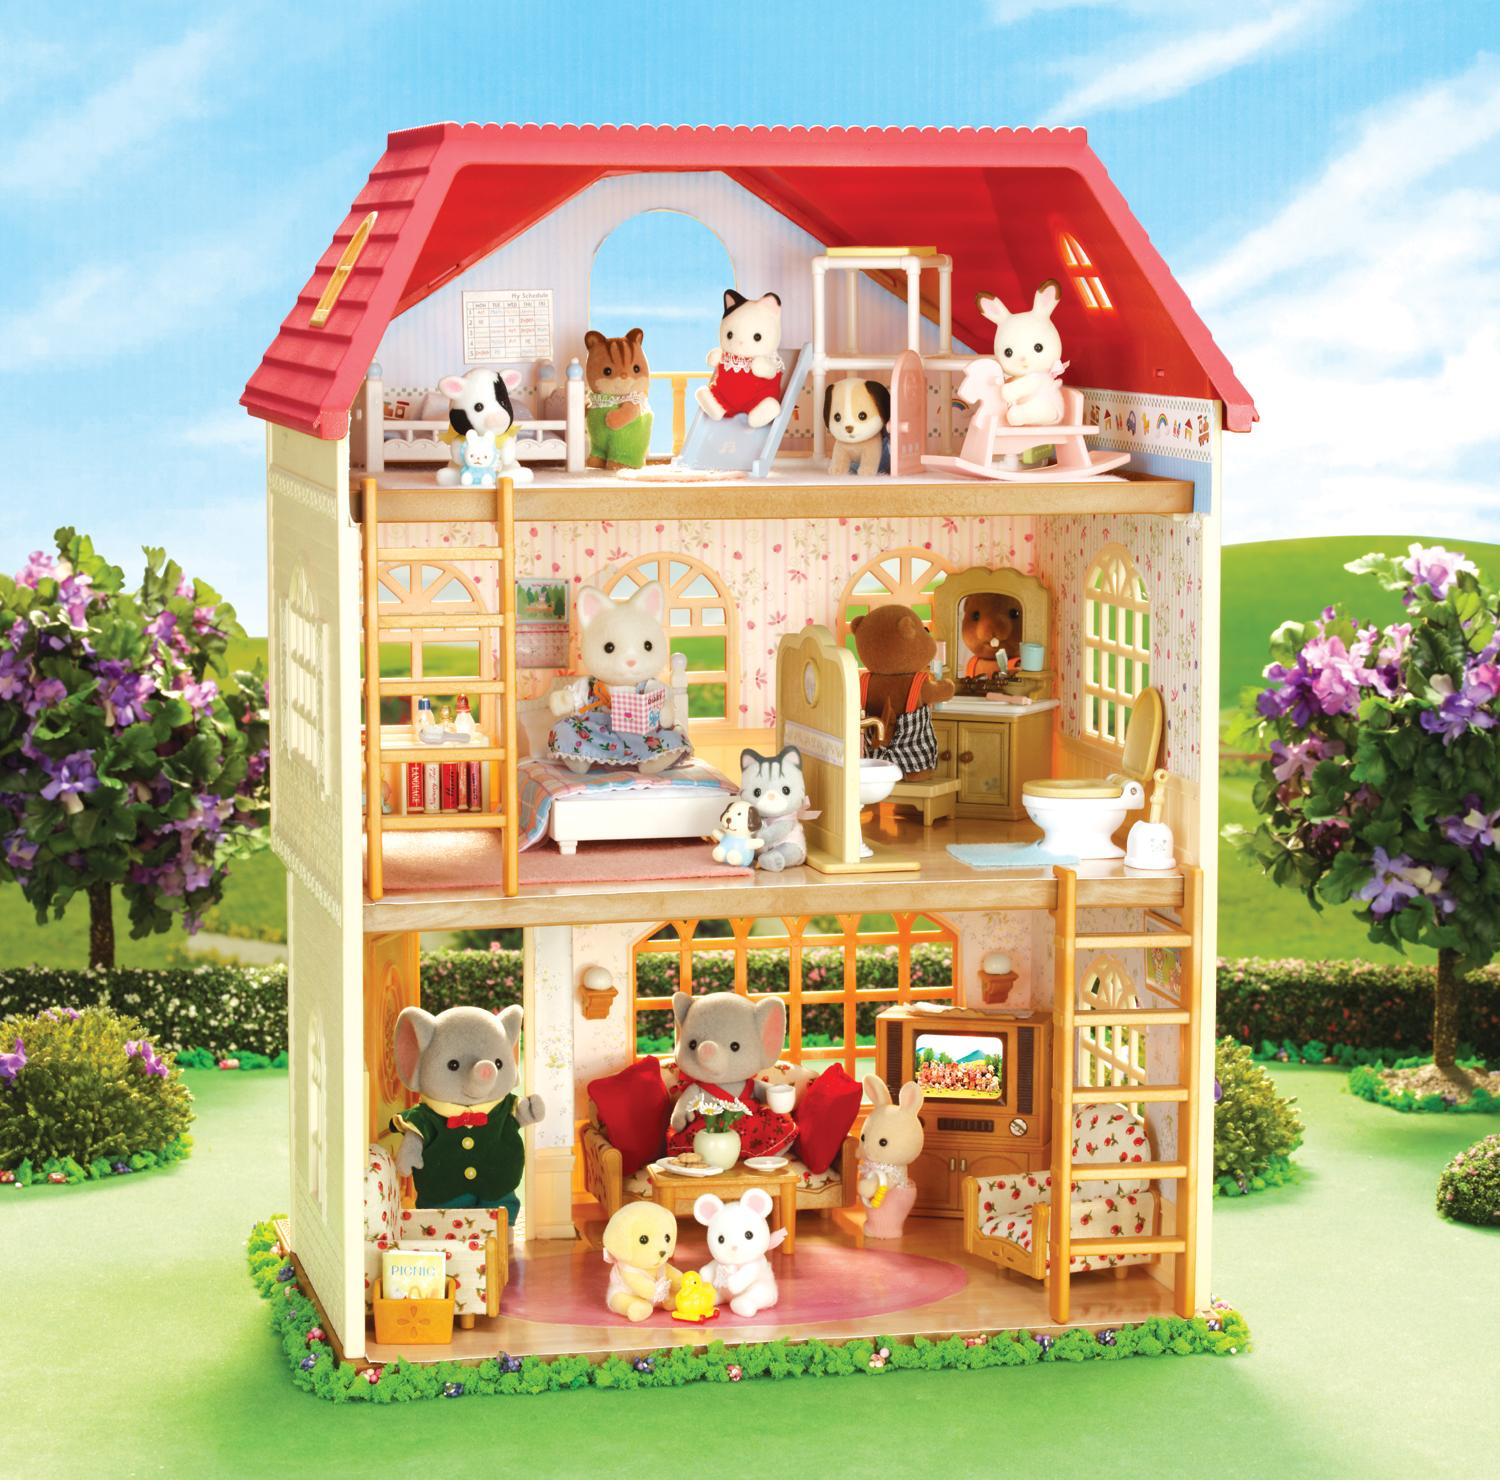 calico critters oakwood home Search Pictures Photos 1500x1480